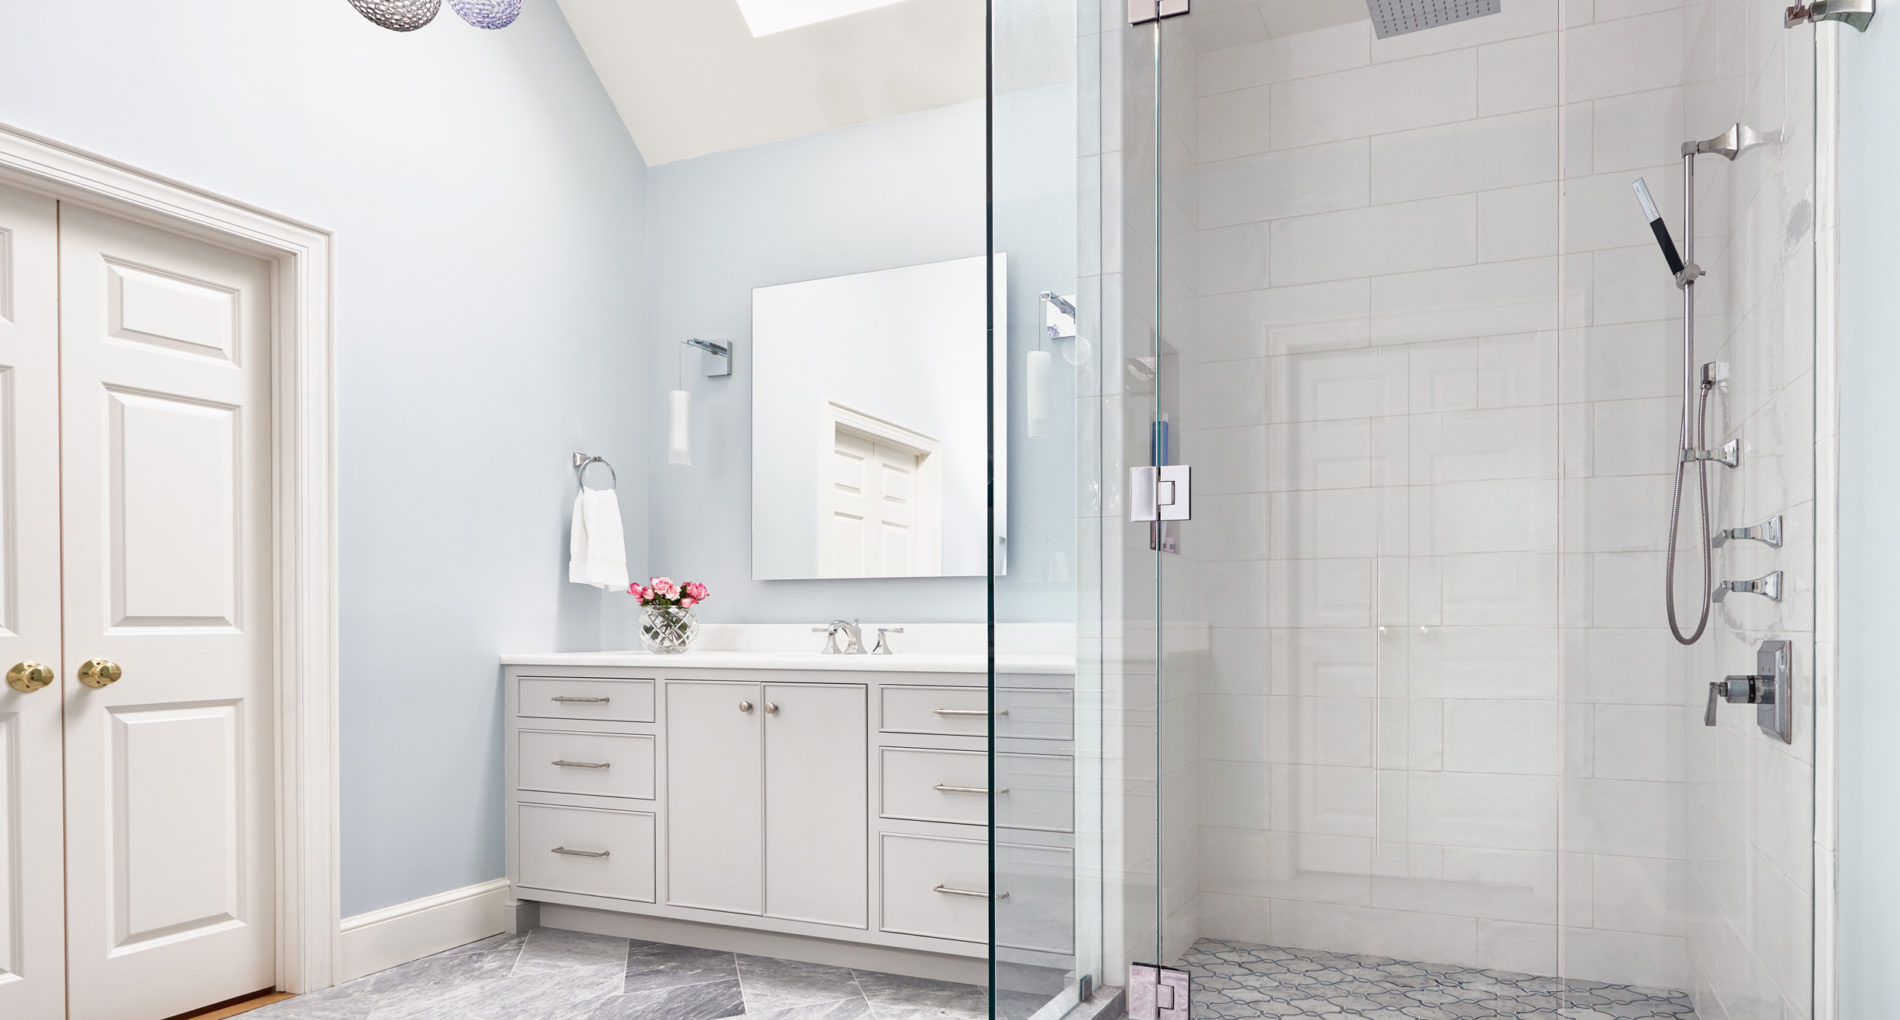 Five Tips for Bathroom Remodeling in 2018